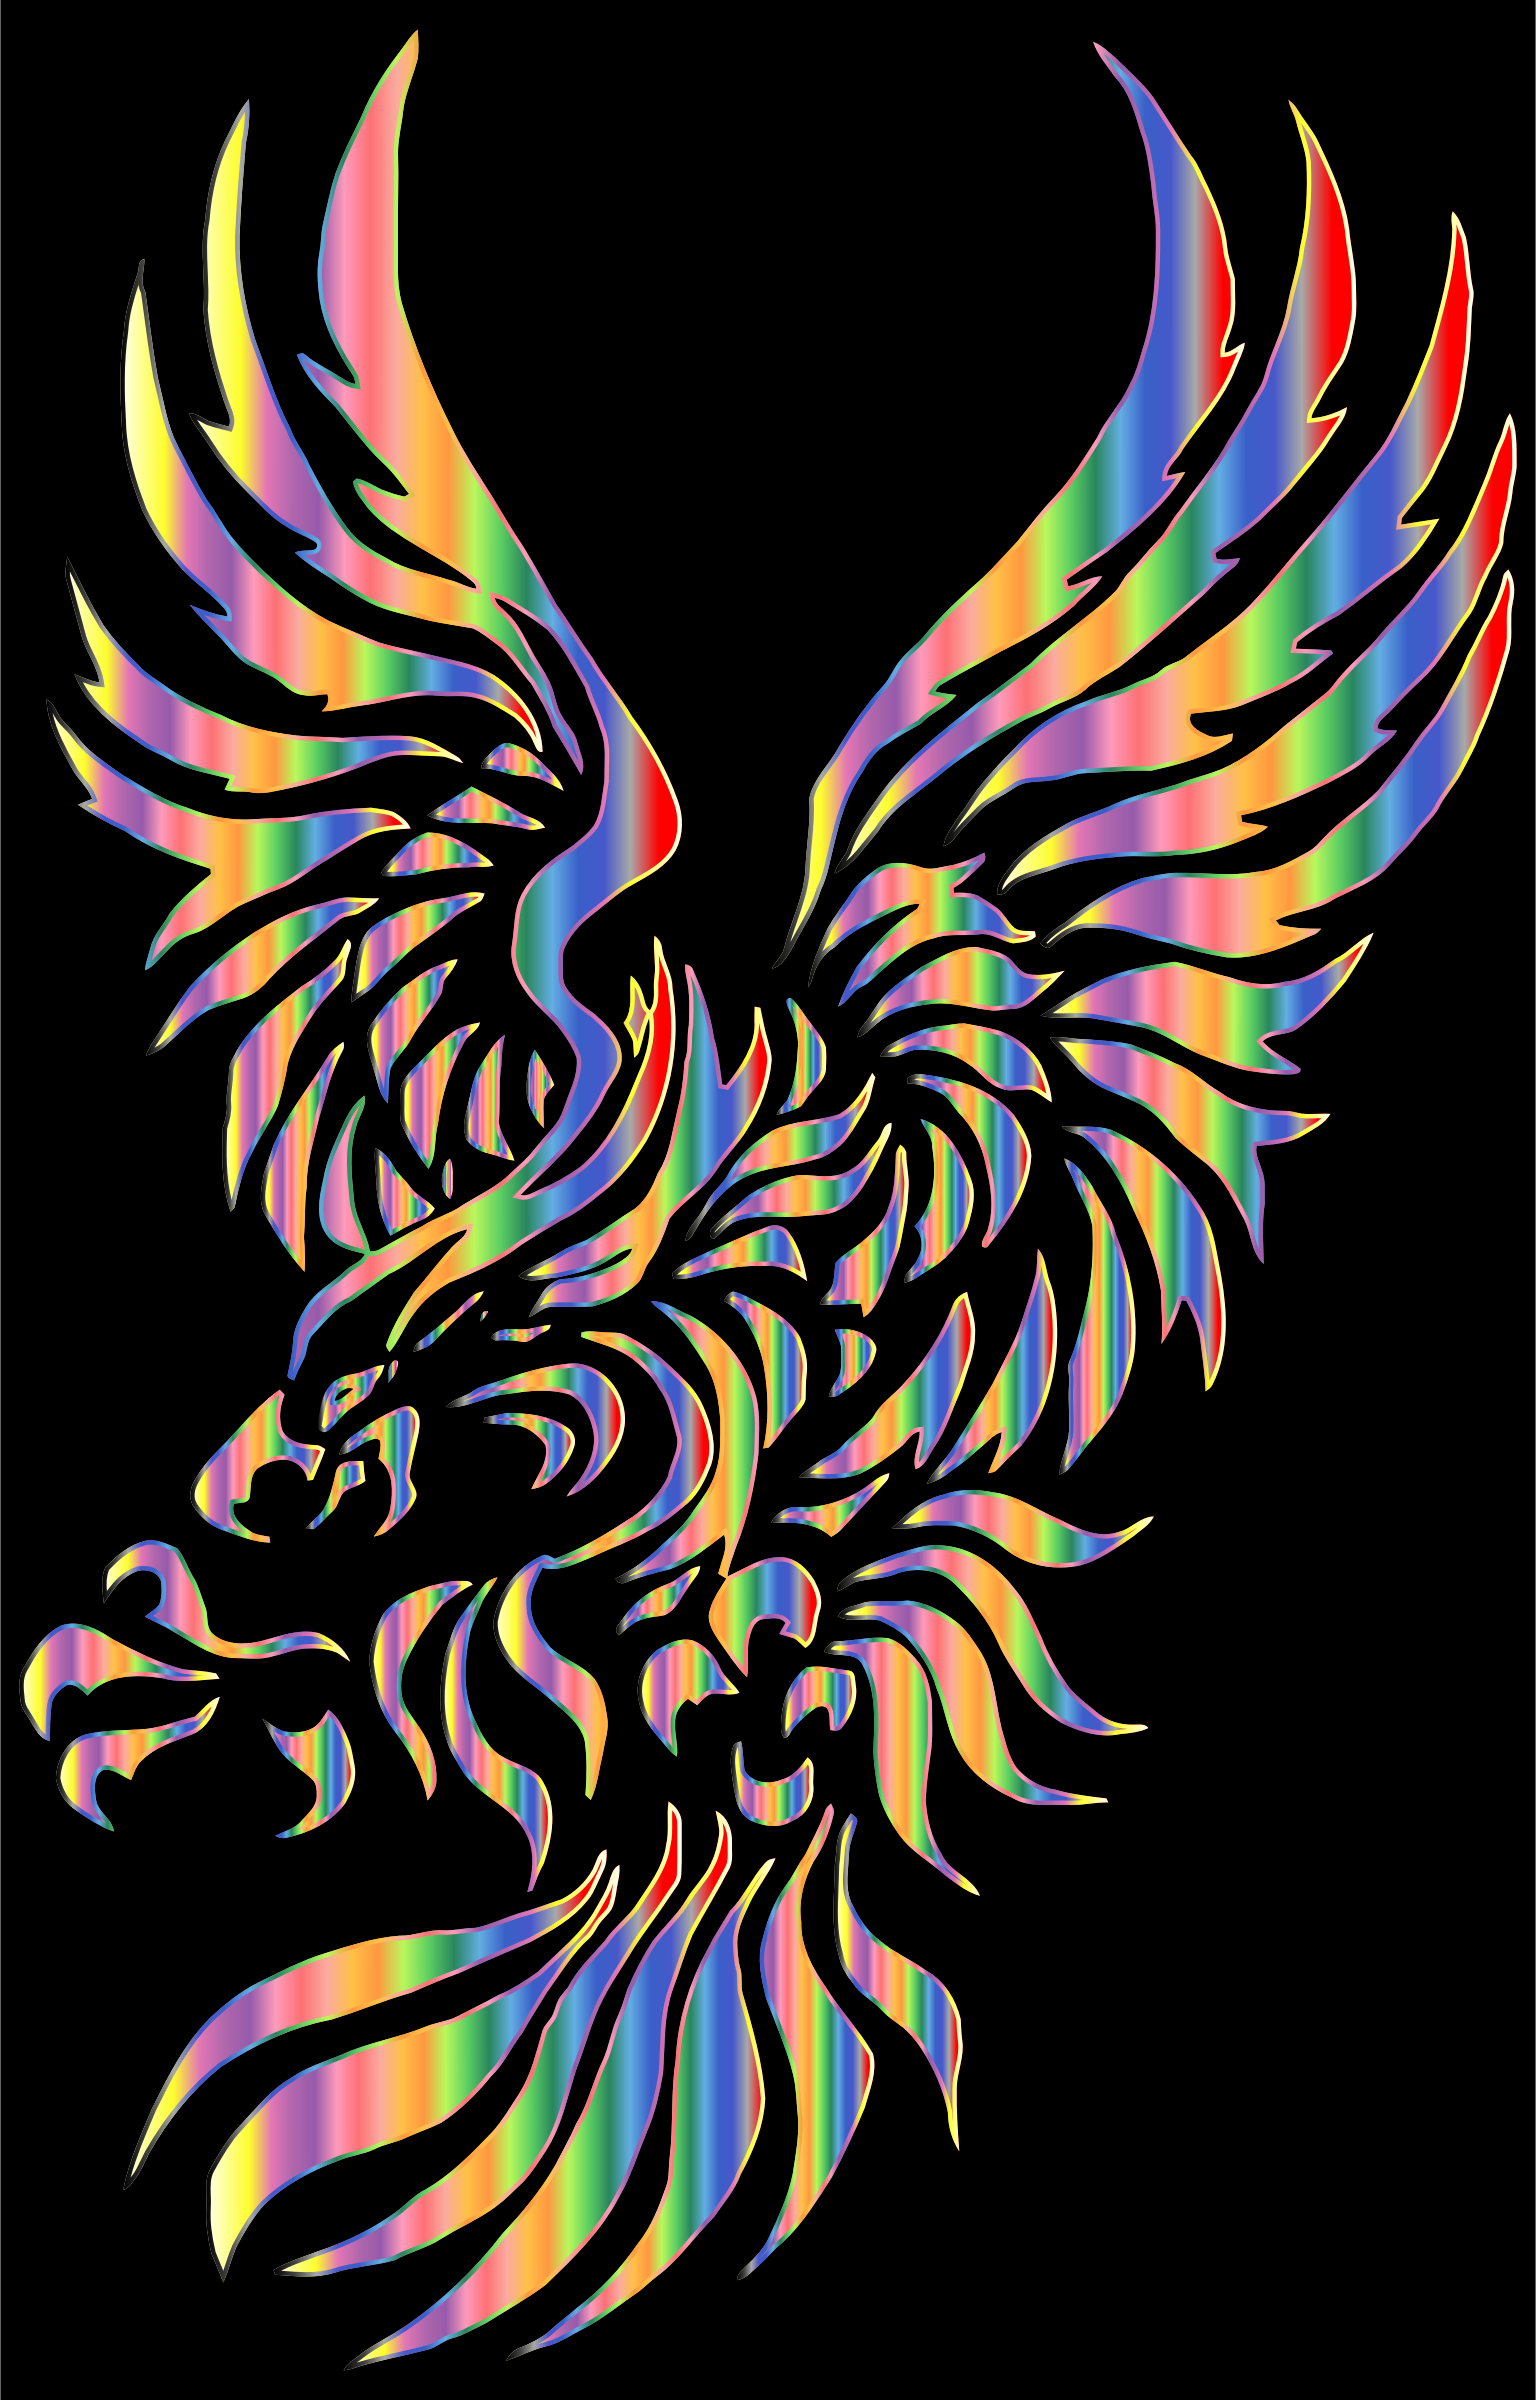 Chromatic Tribal Eagle 2 2 by GDJ